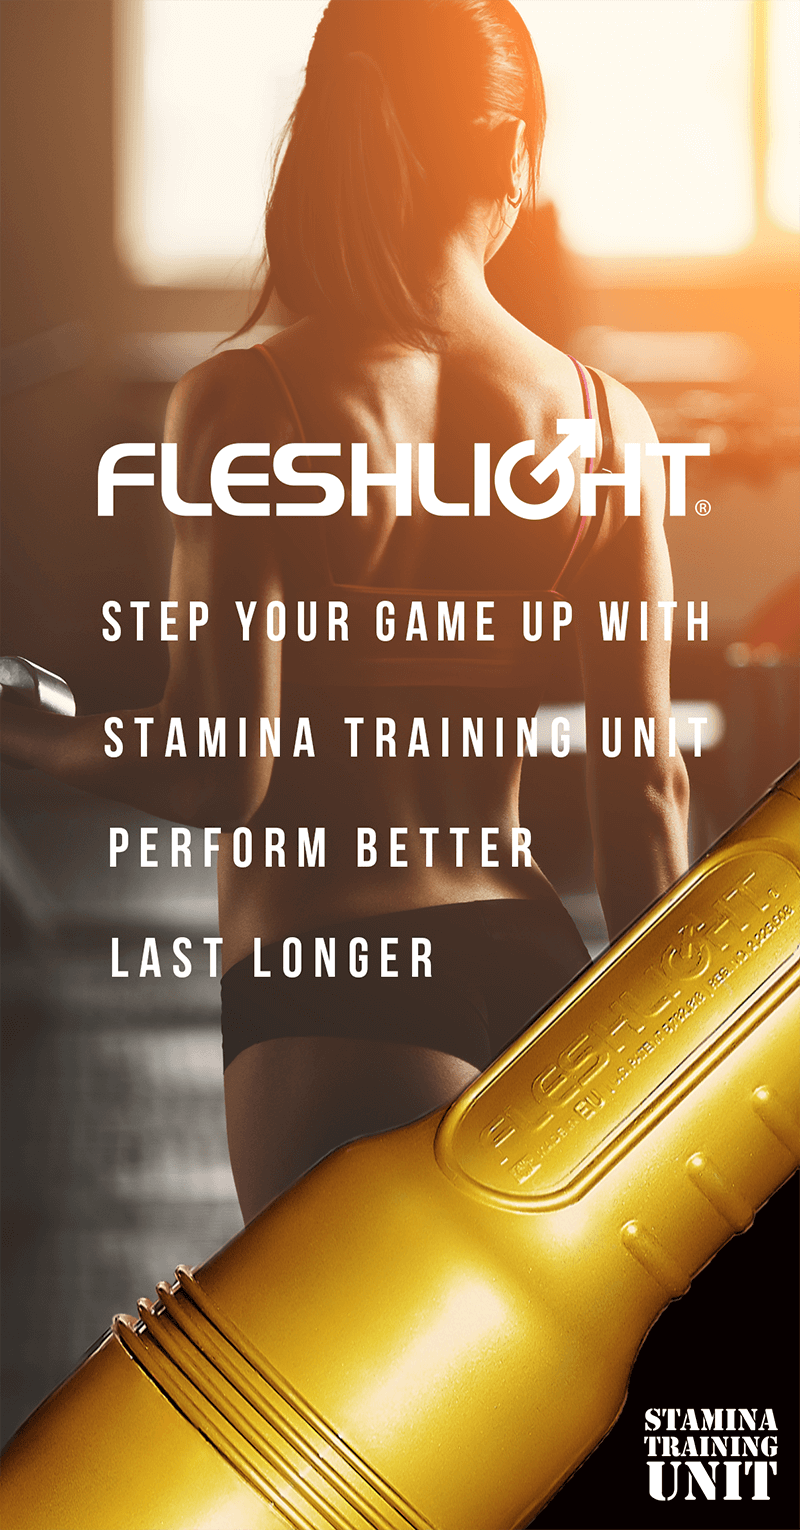 Spring Training Starts Today with Fleshlight Stamina Training Unit